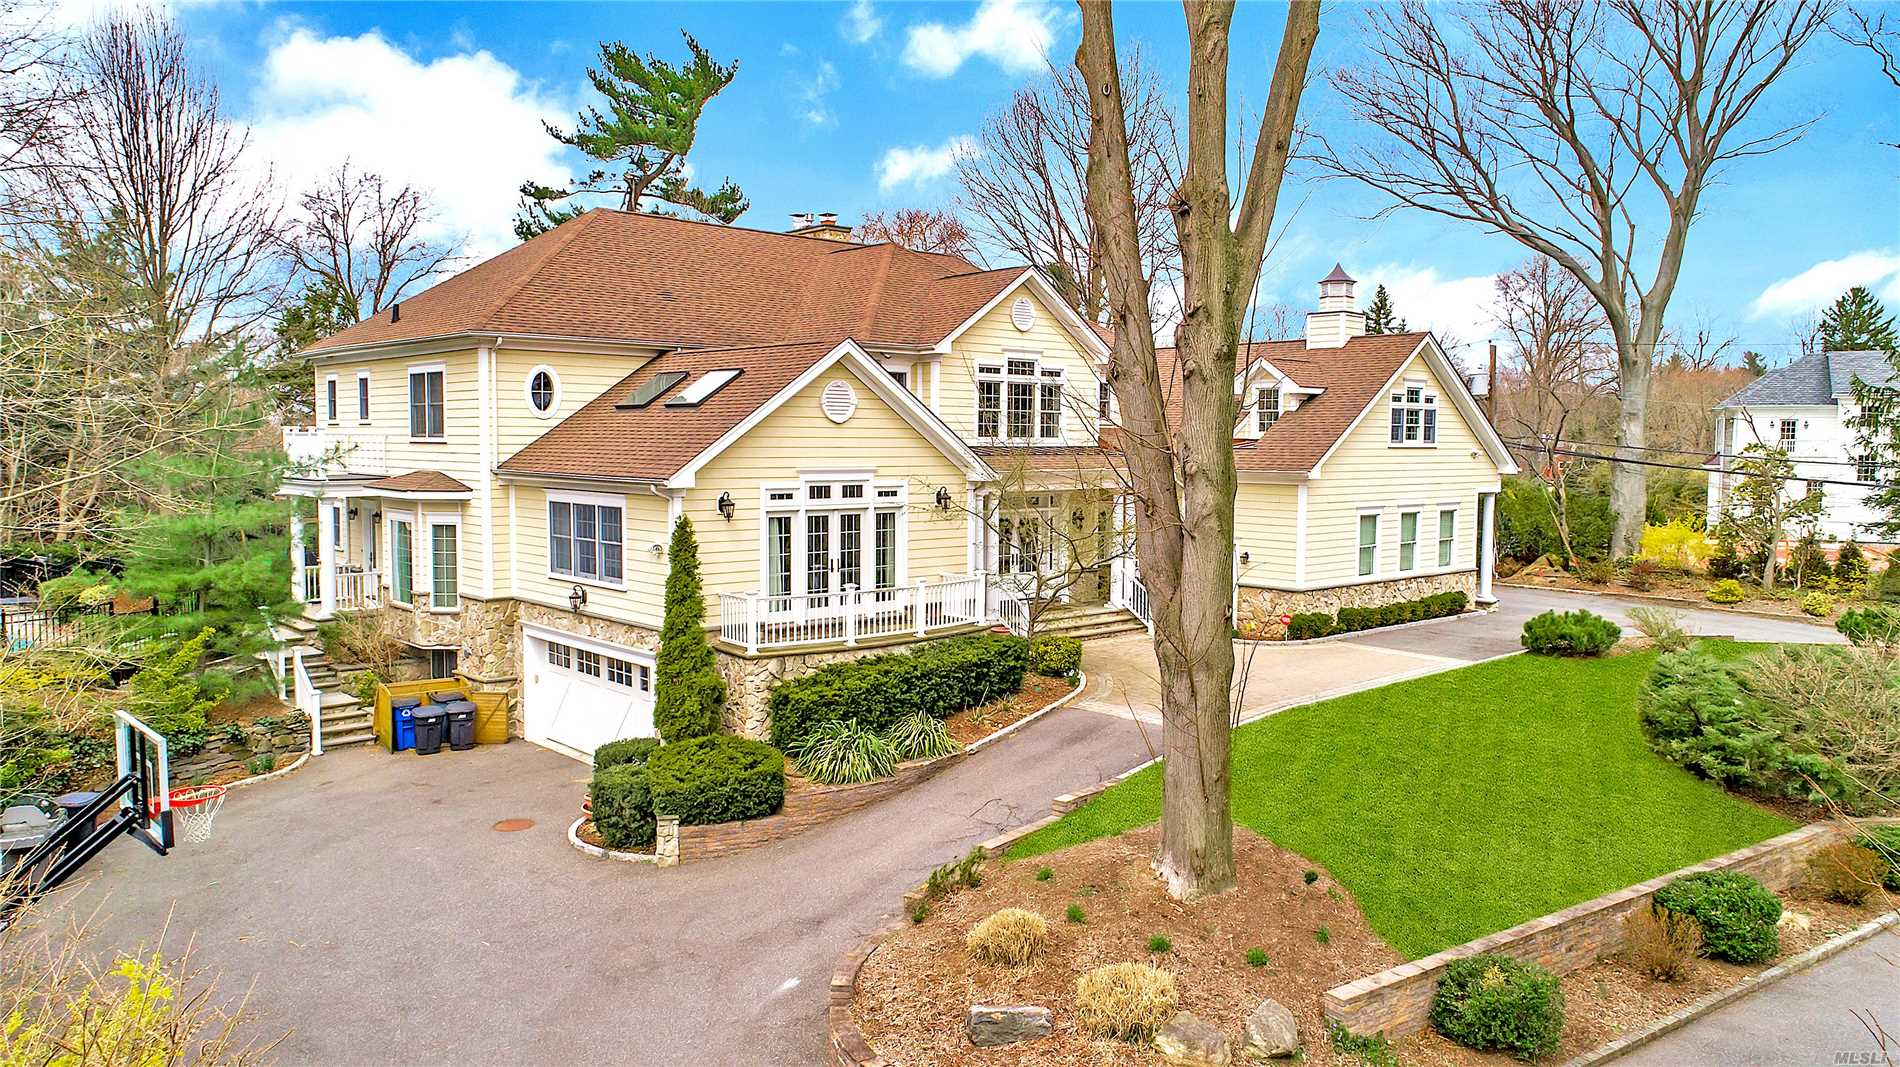 Welcome to this stunning stone and shingle colonial home situated on a shy acre of land in the heart of prestigious Plandome Manor. The residence, accessed down a long private driveway, features spectacular grounds which include a heated in-ground pool, a cabana, and ample open space.